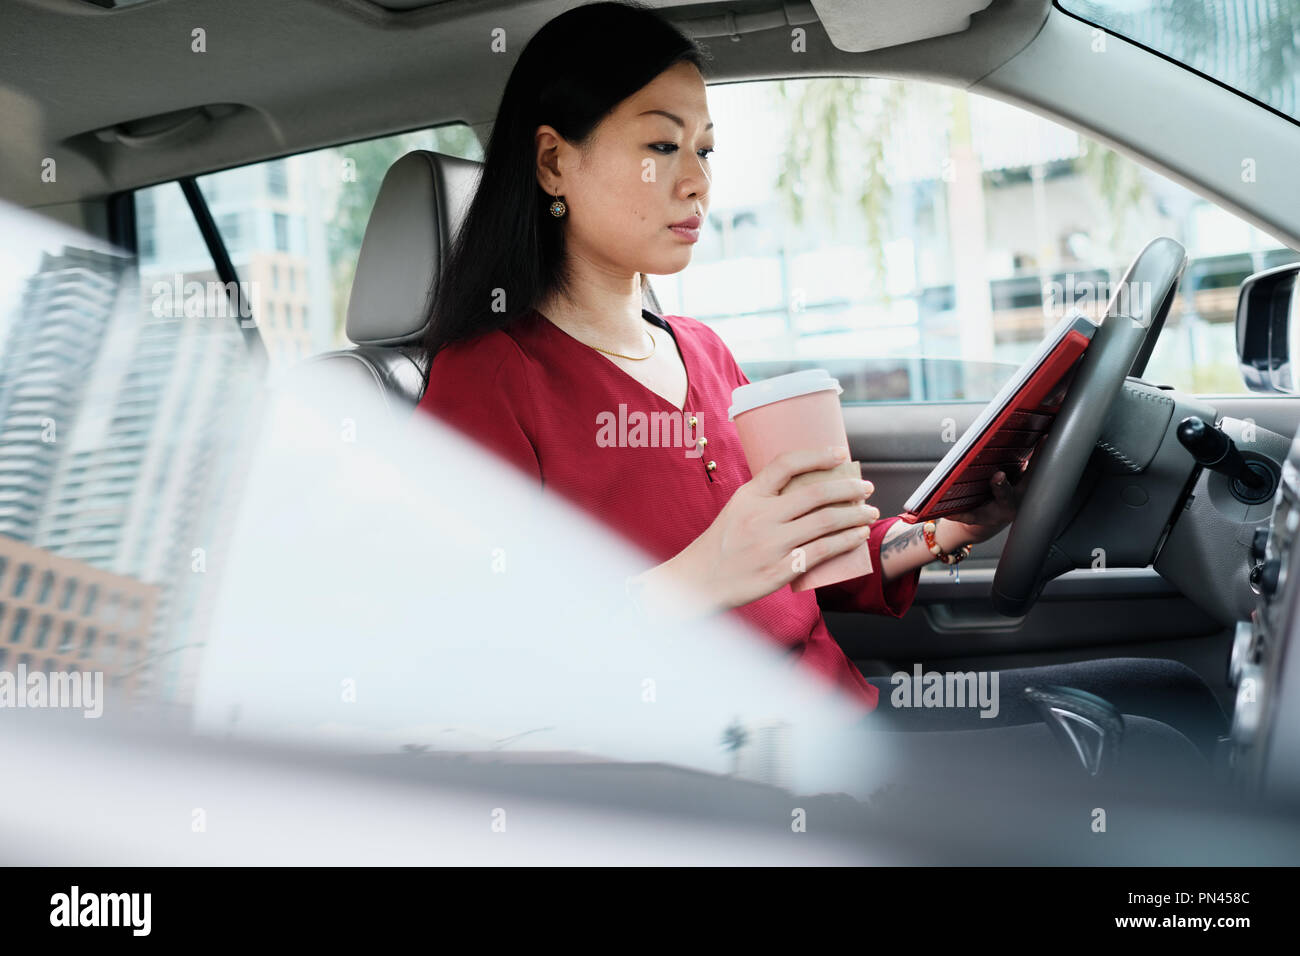 Busy Chinese Business Woman Working In Car With Tablet - Stock Image